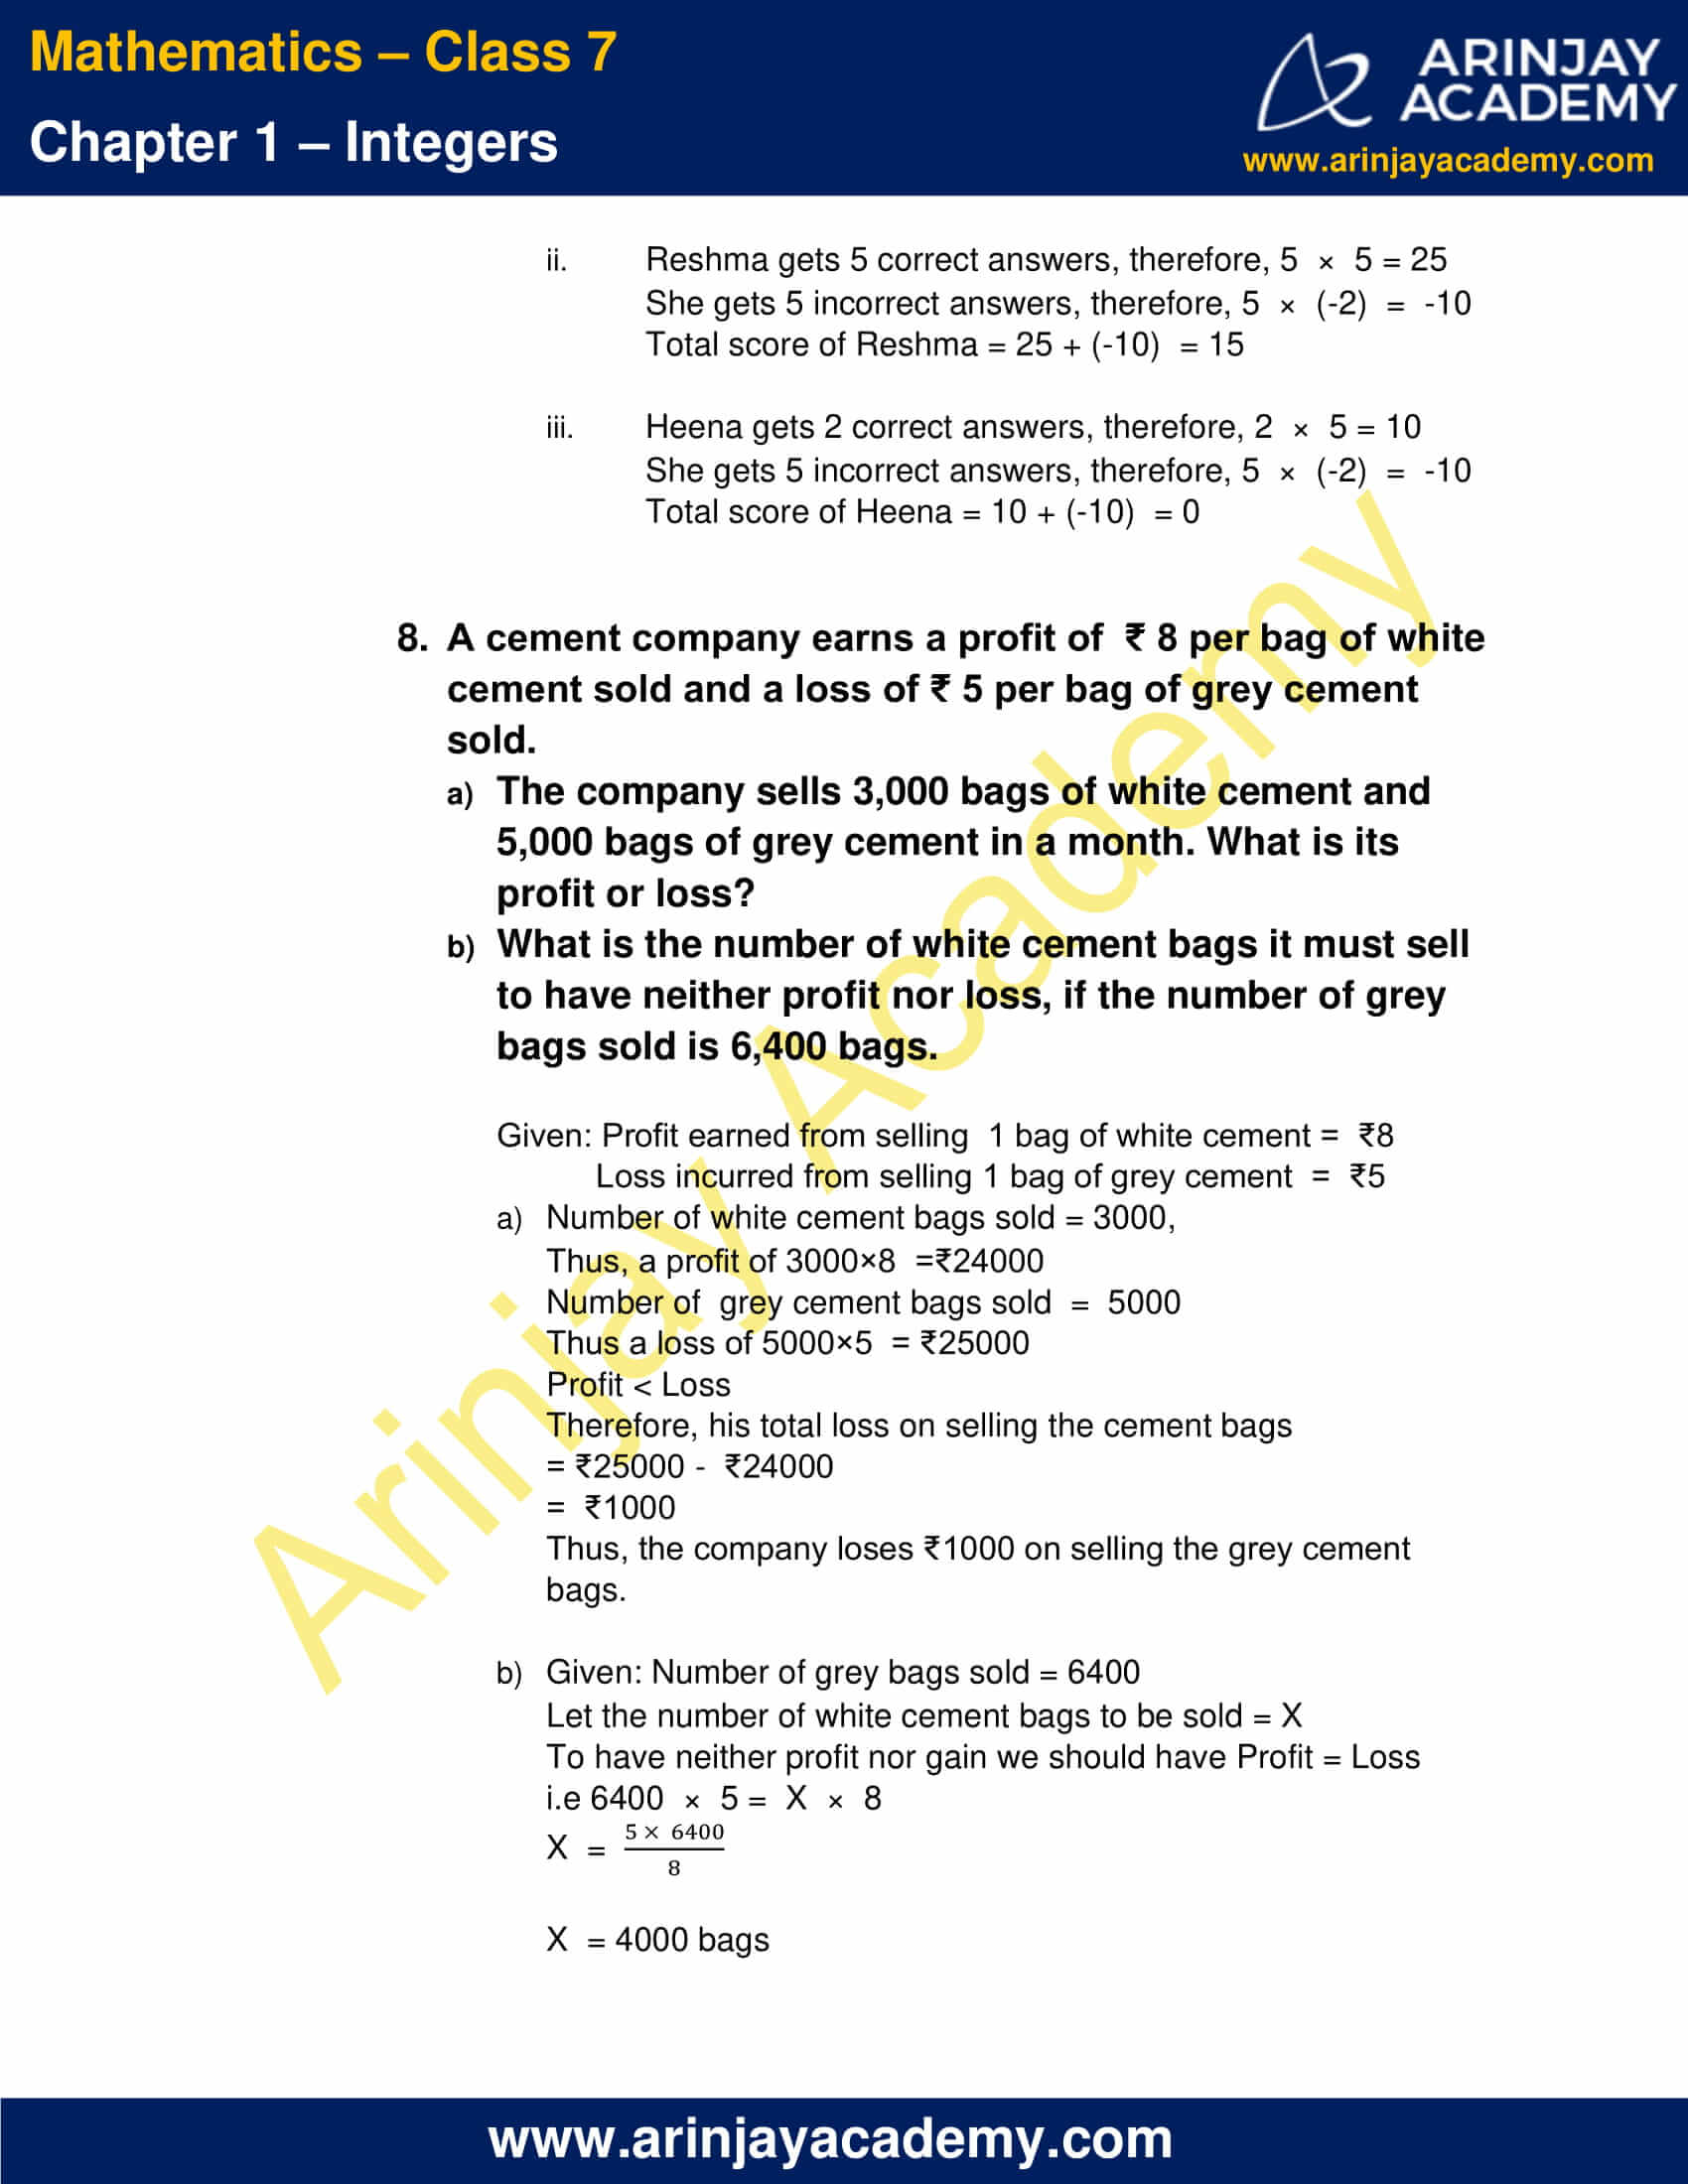 Class 7 Maths NCERT Solutions Chapter 1 Exercise 1.3 image 5